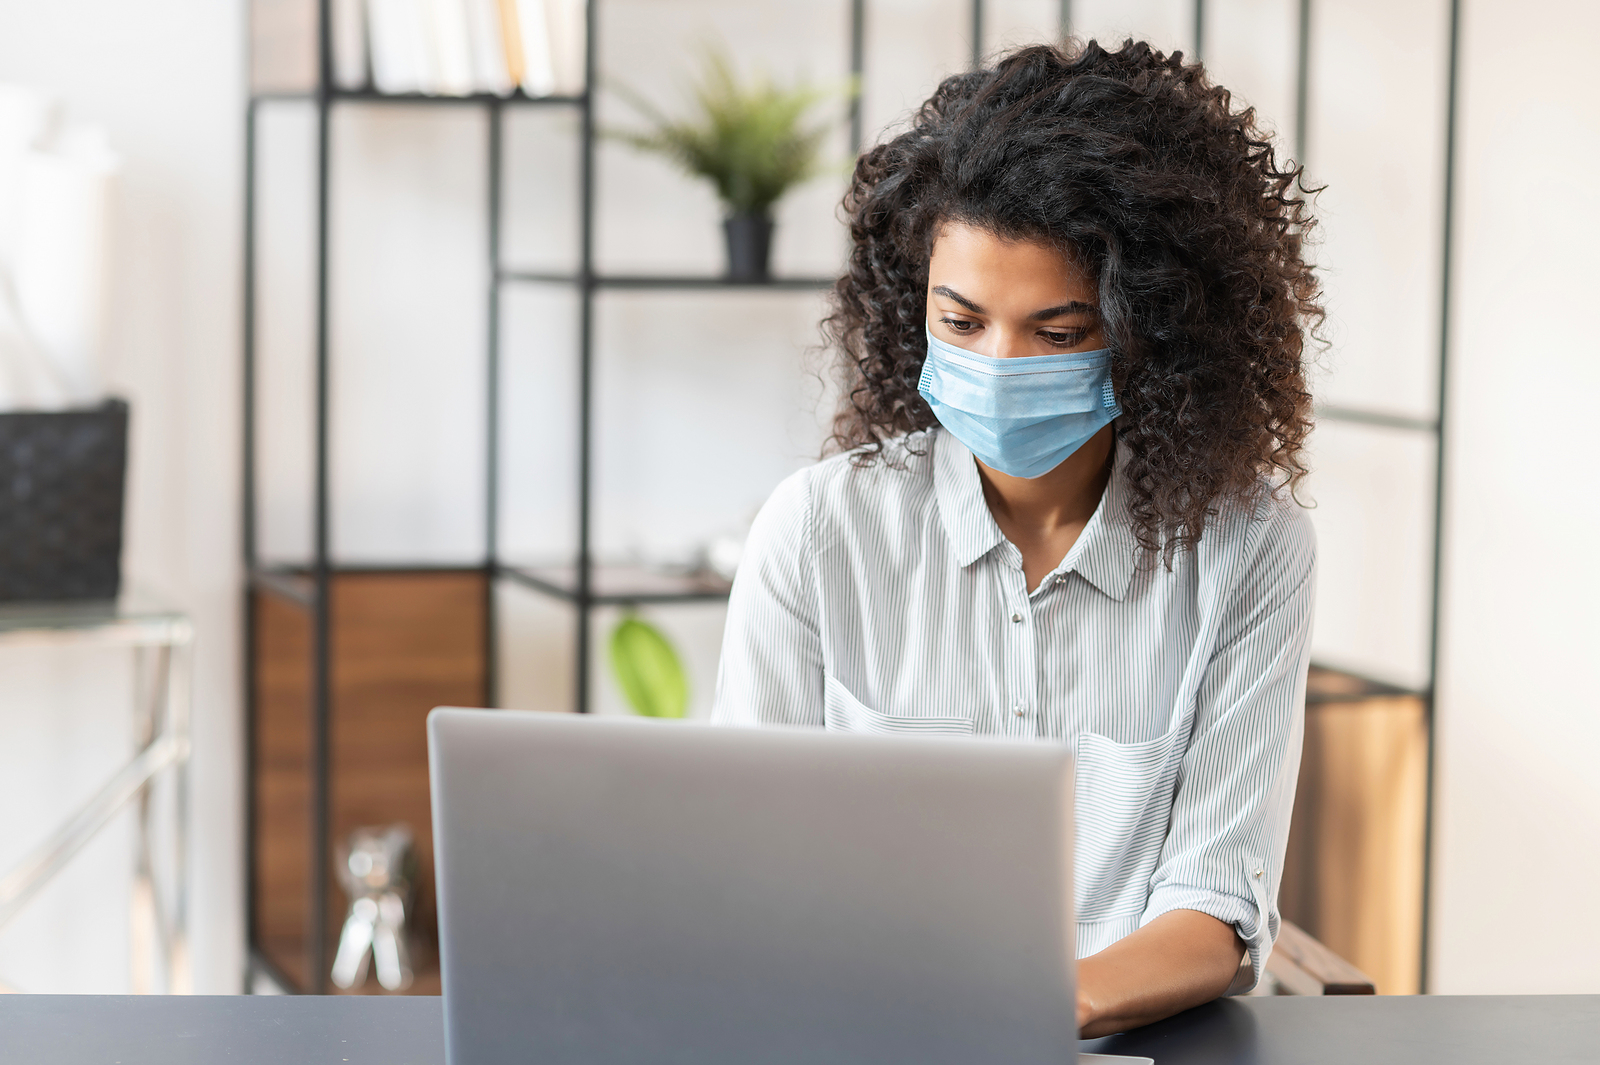 Here's How to Find A Post-Graduation Job During A Pandemic